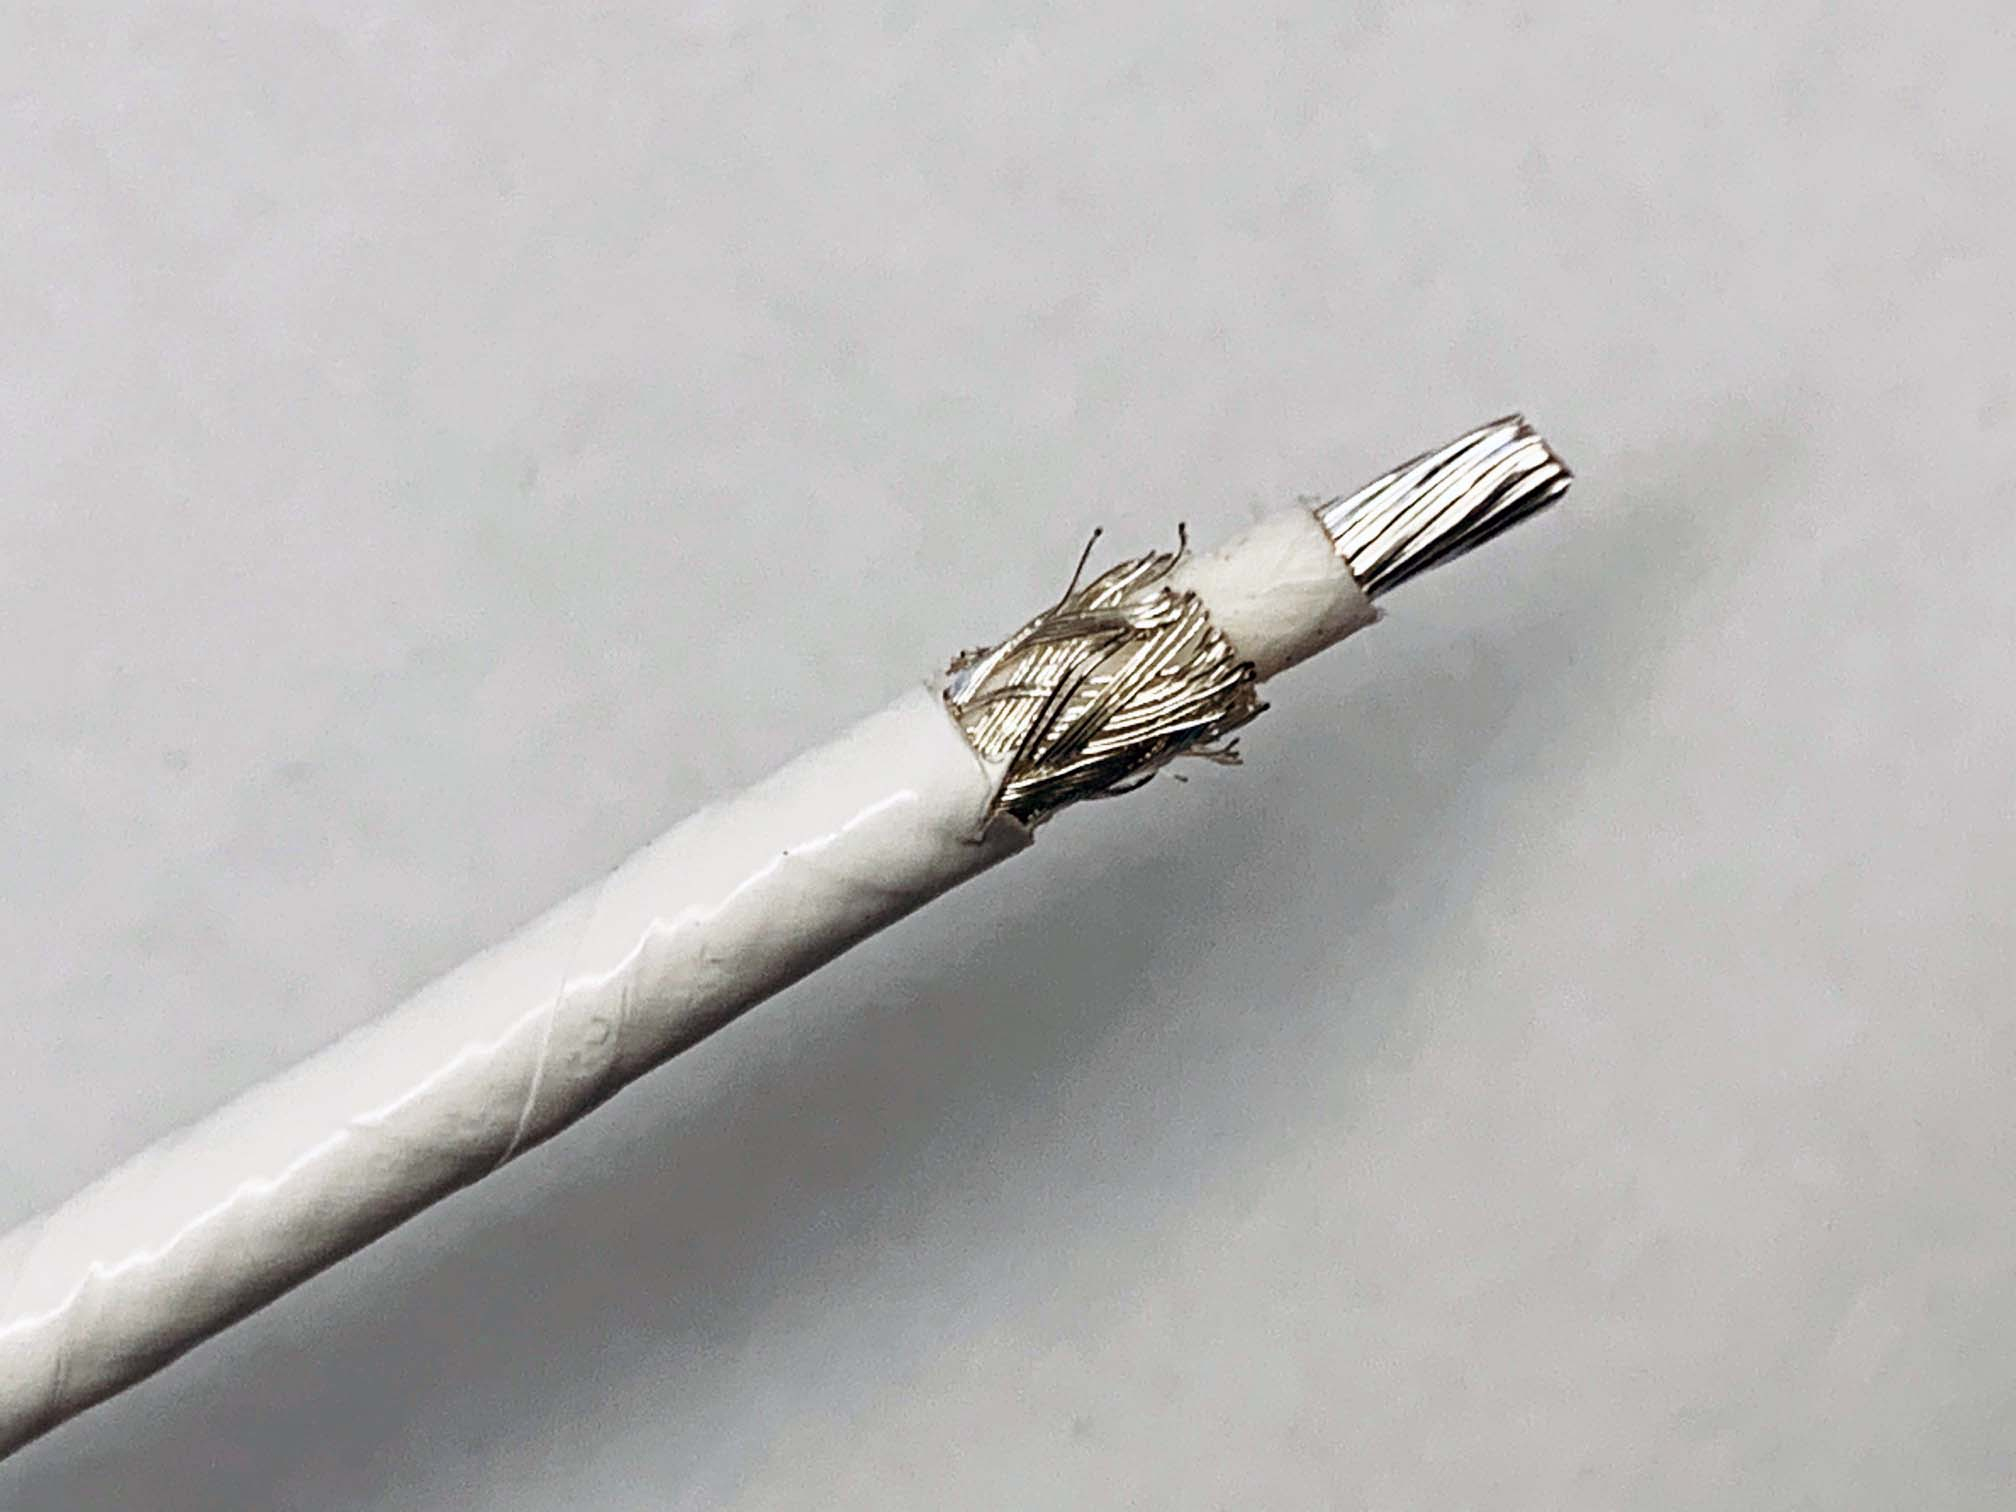 TC 12 Coaxial Cable